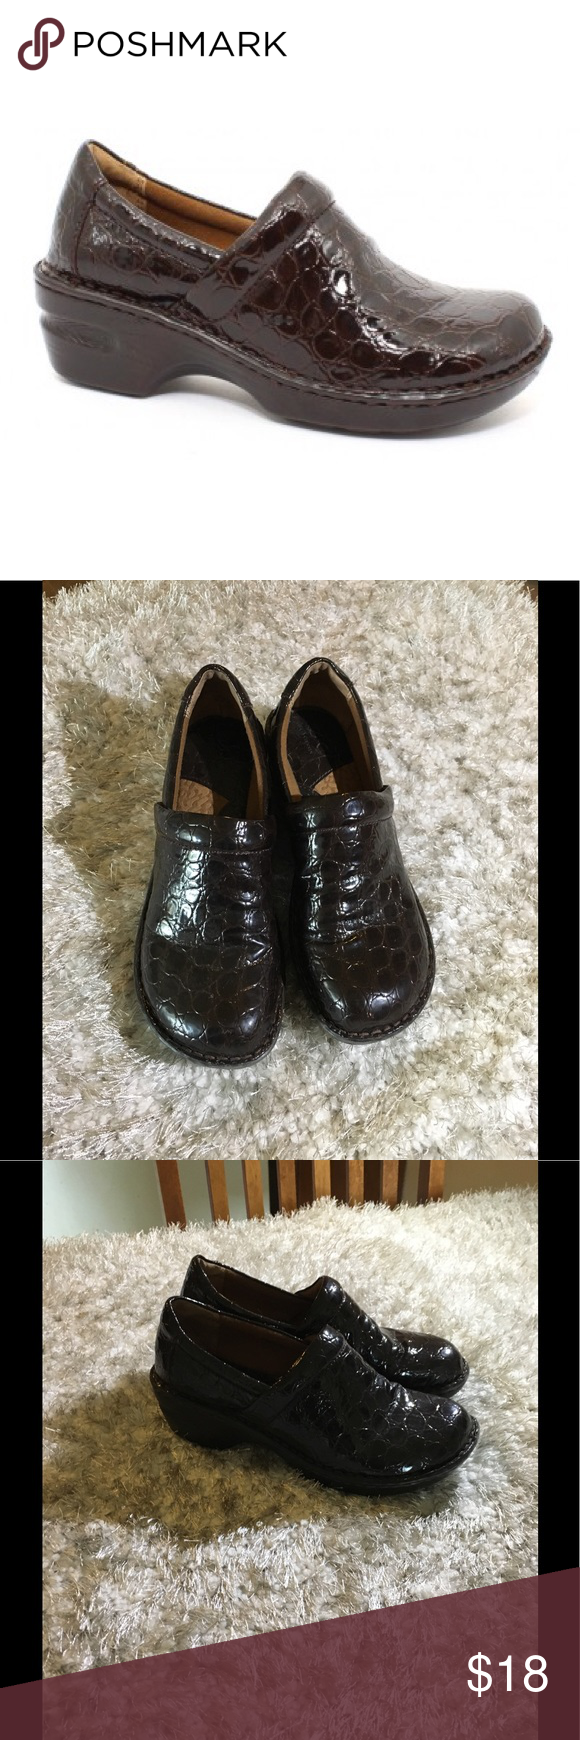 B•o•c Nursing Shoes Excellent Condition Pretty And Colorful Clothing, Shoes & Accessories